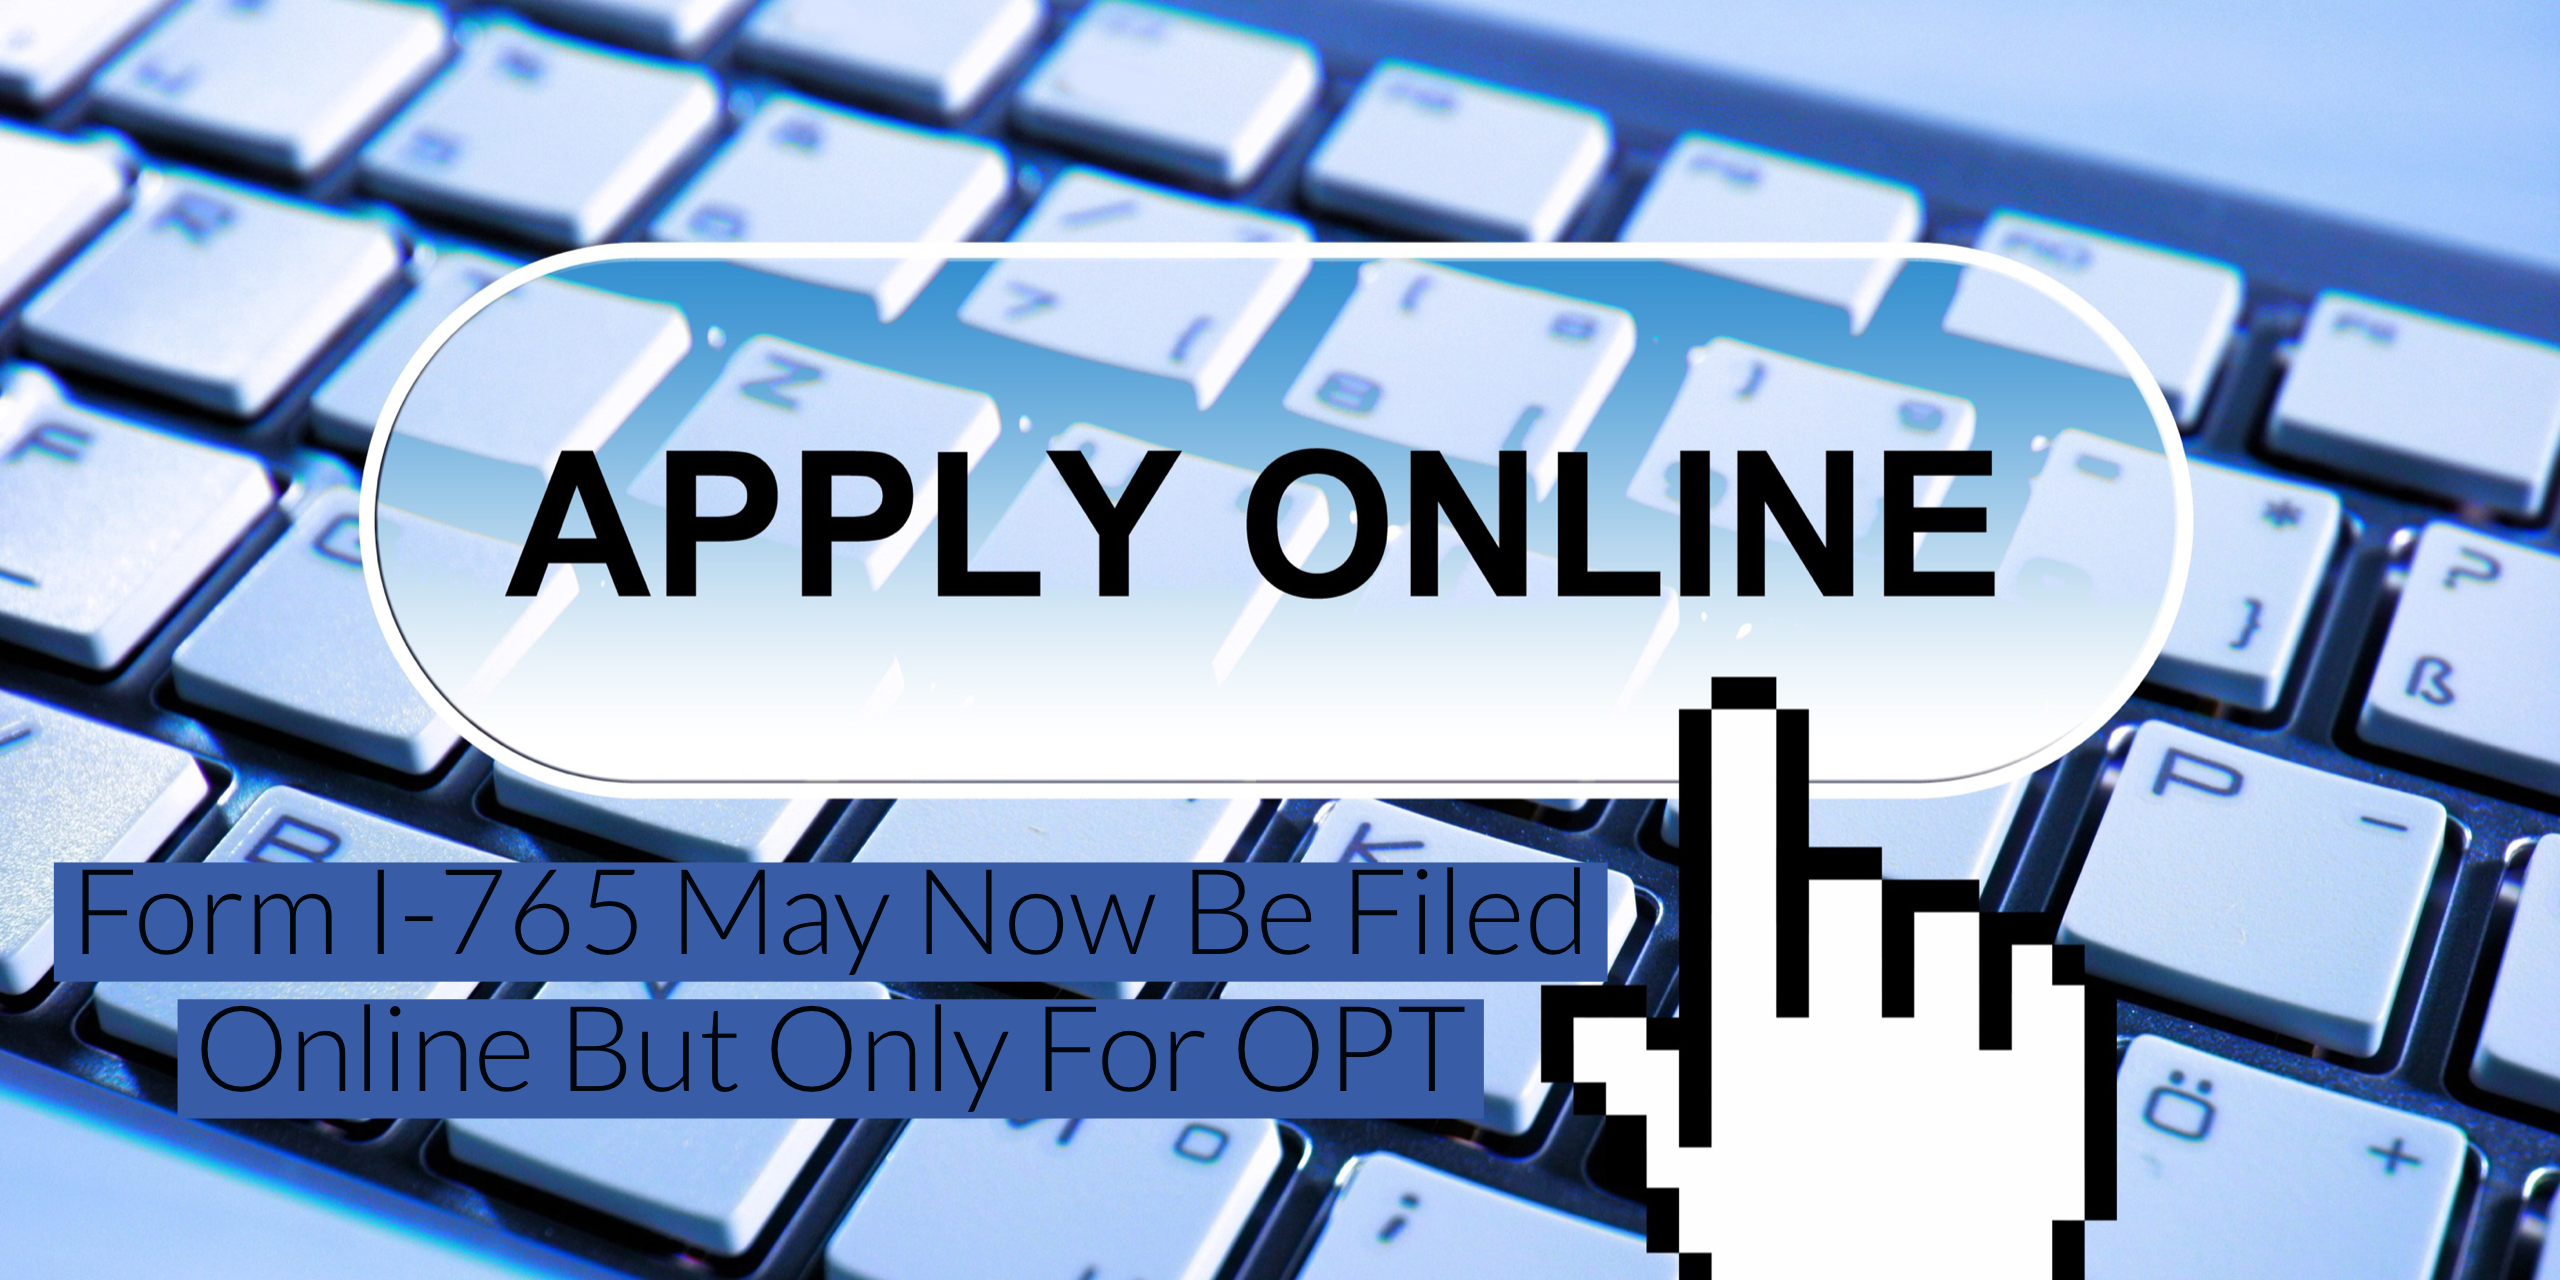 F-1 OPT May Now be Filed Online via Online Form I-765